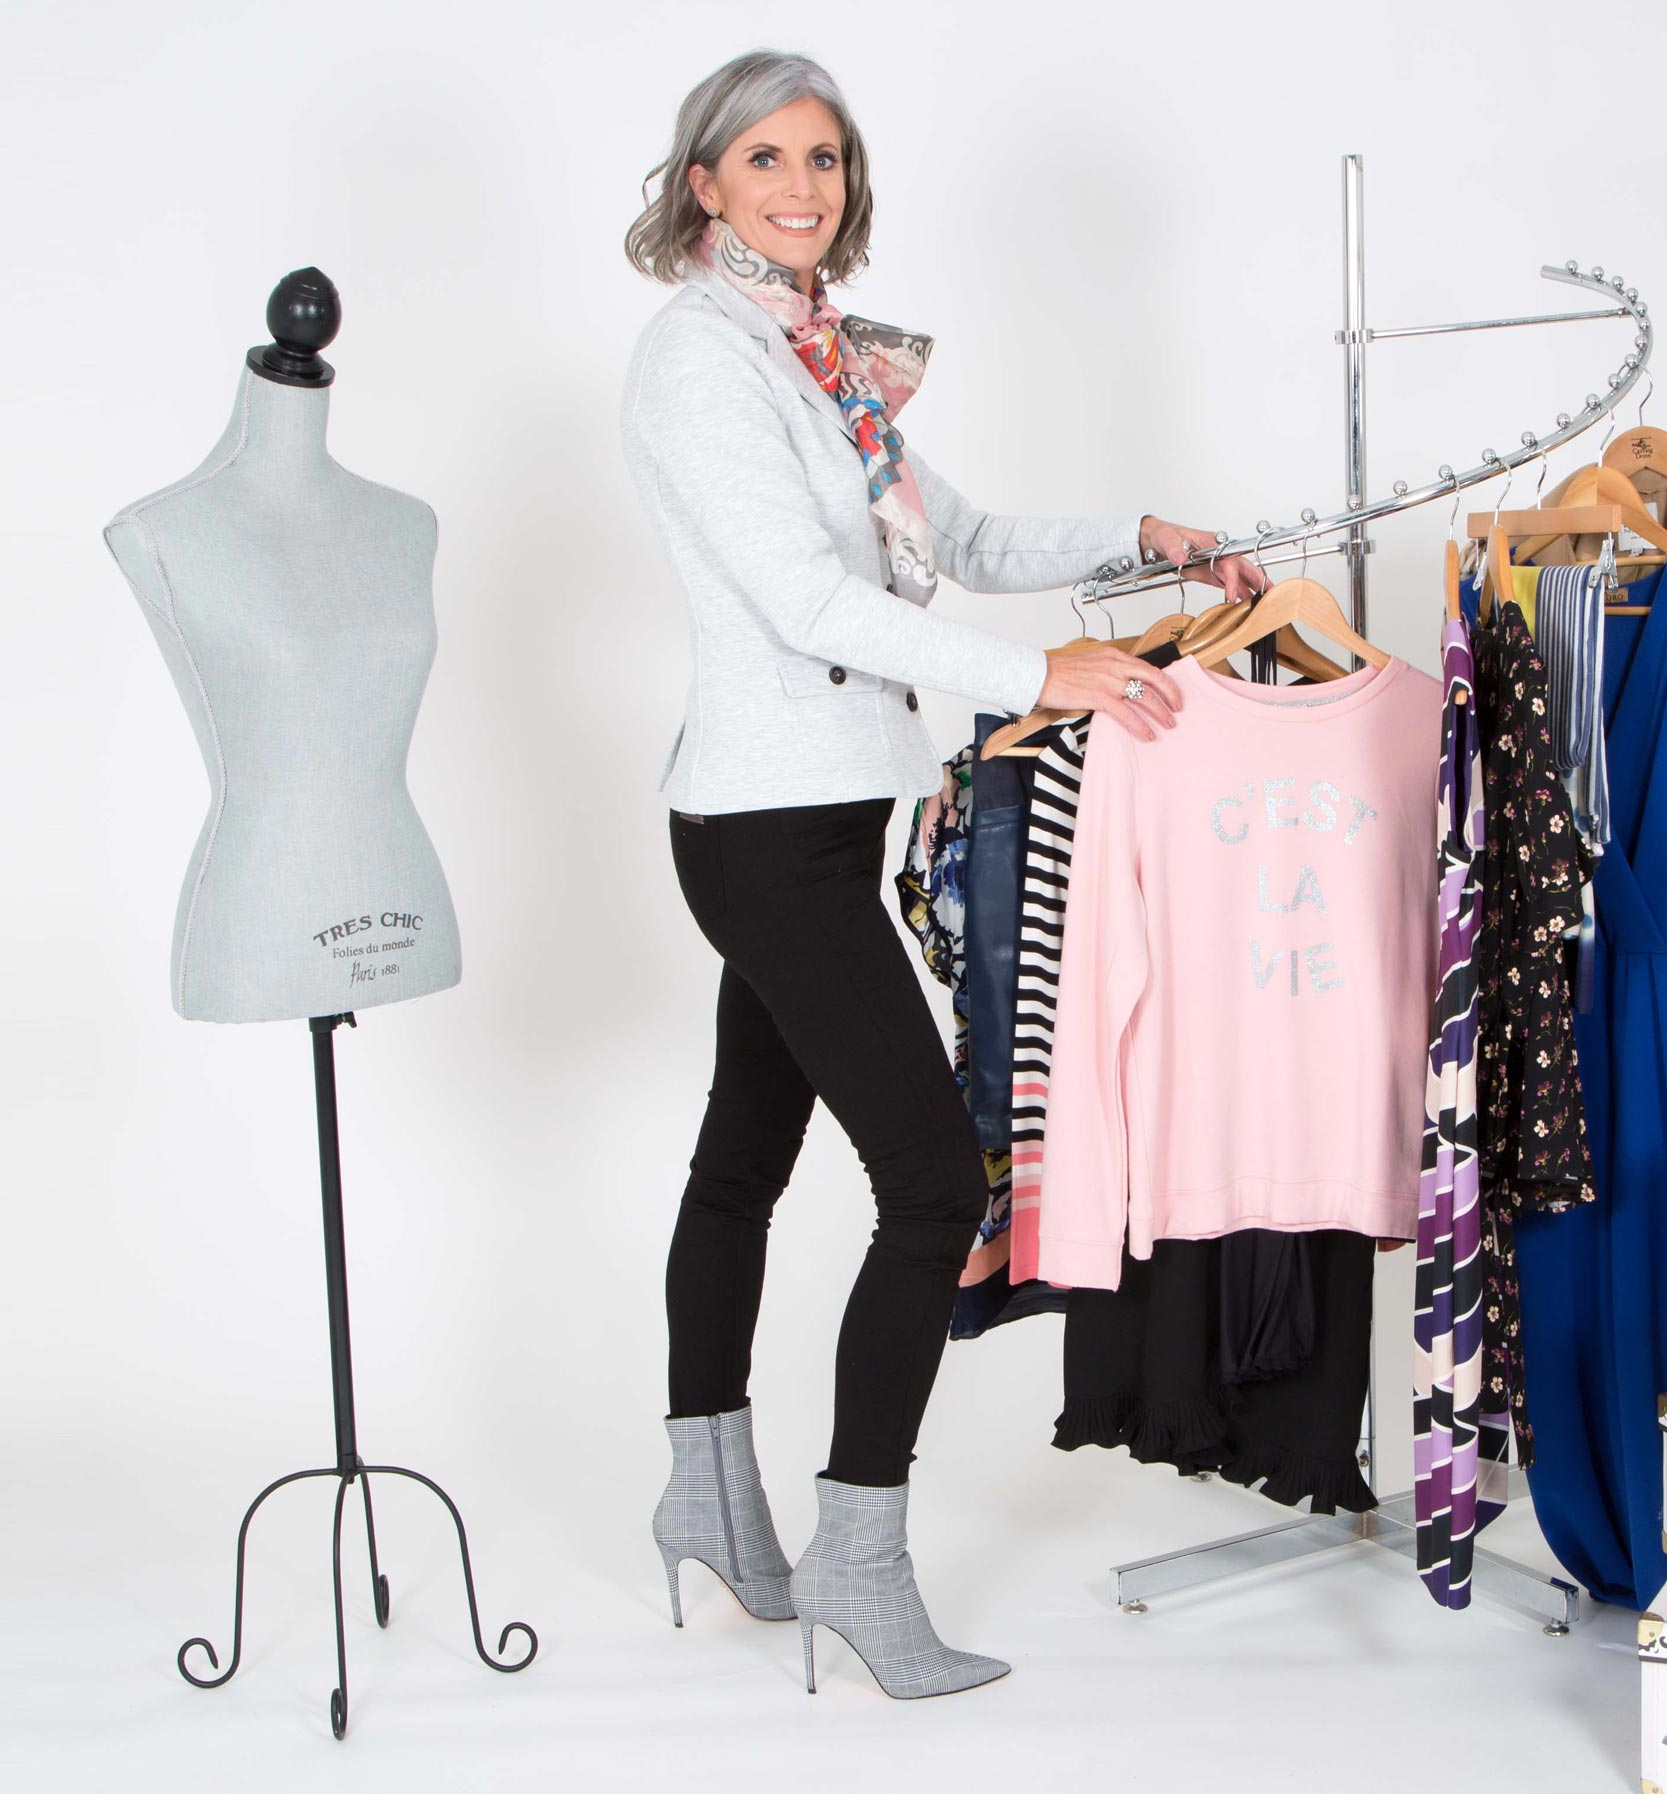 Bernie Delaney - looking at dresses on a cloths rack